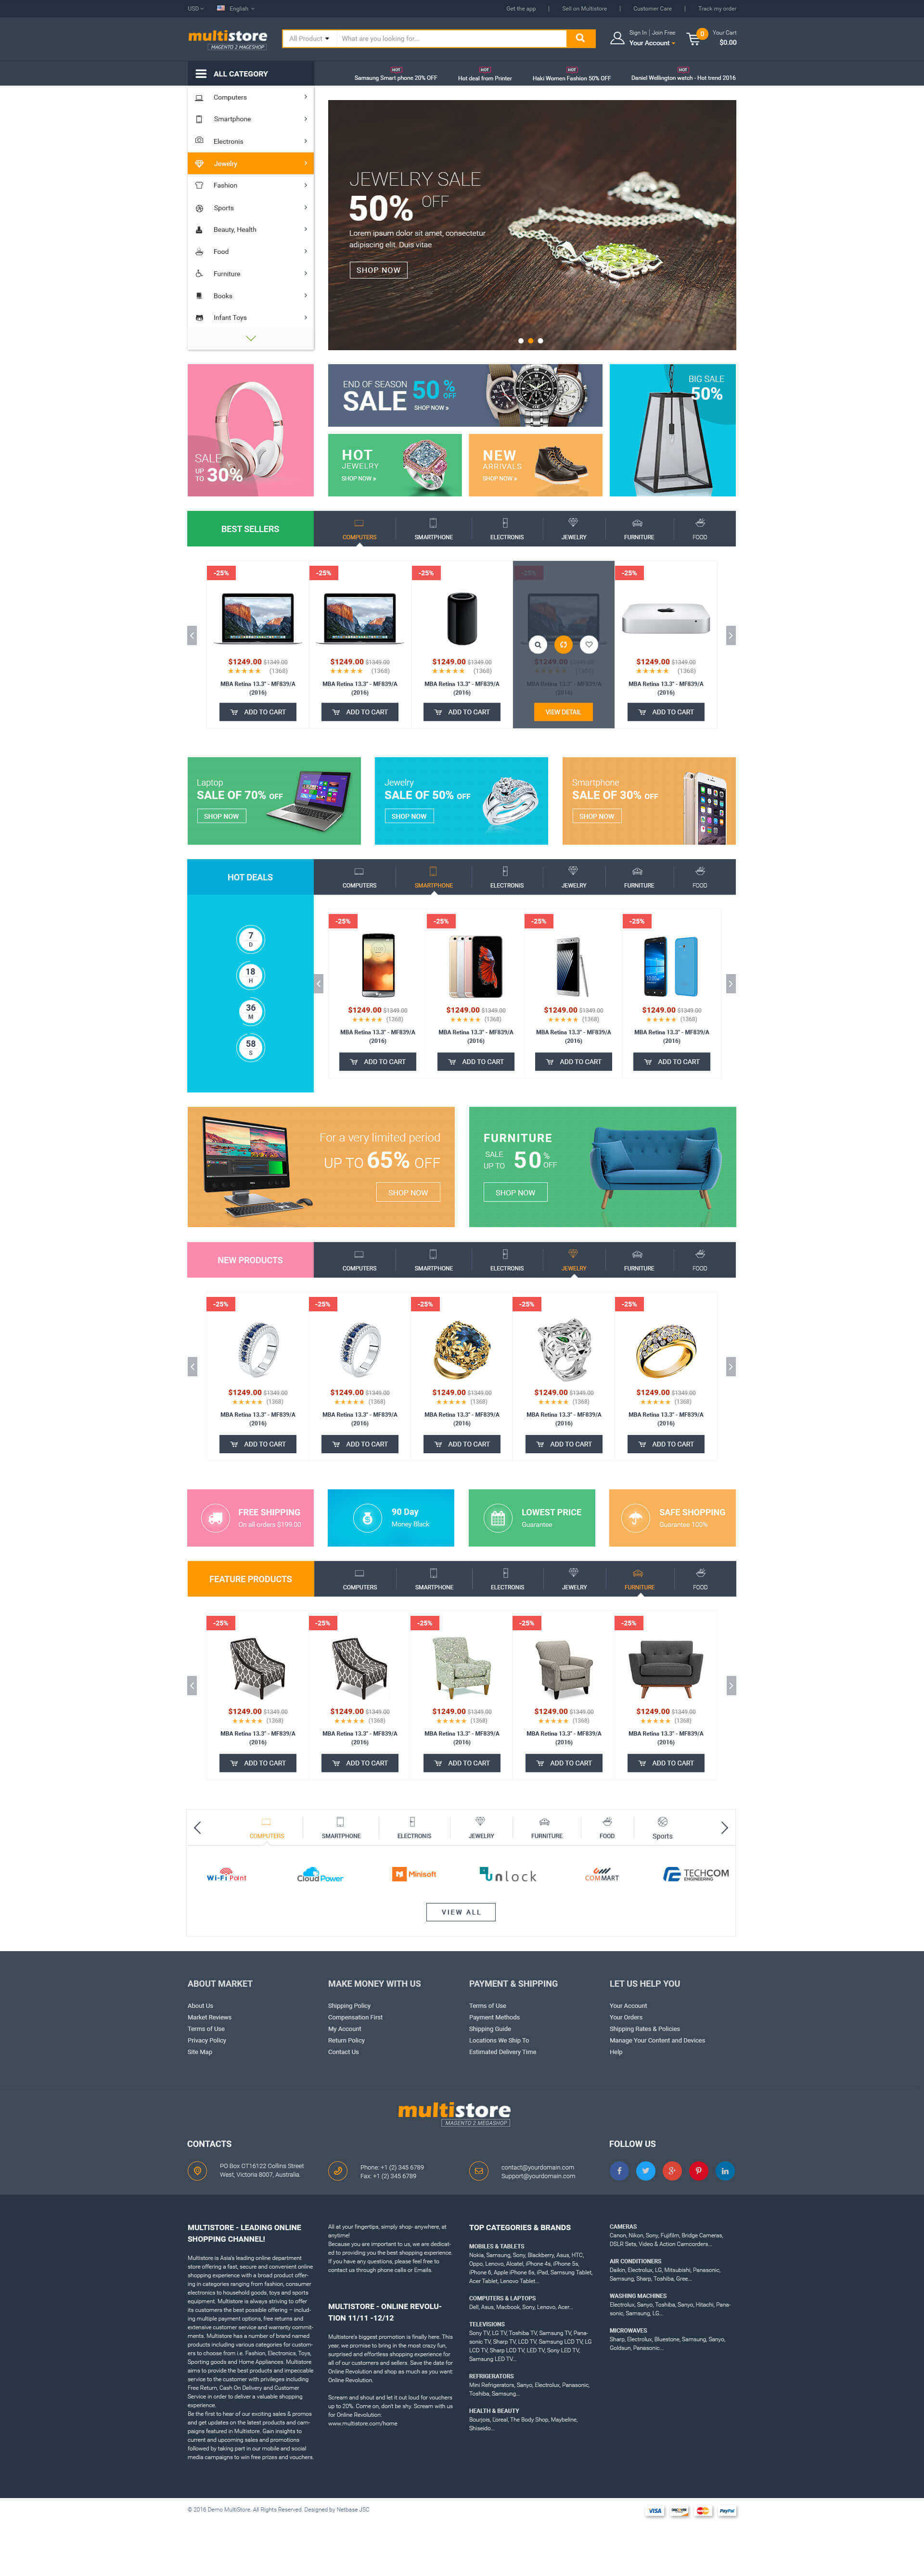 Multistore Homepage